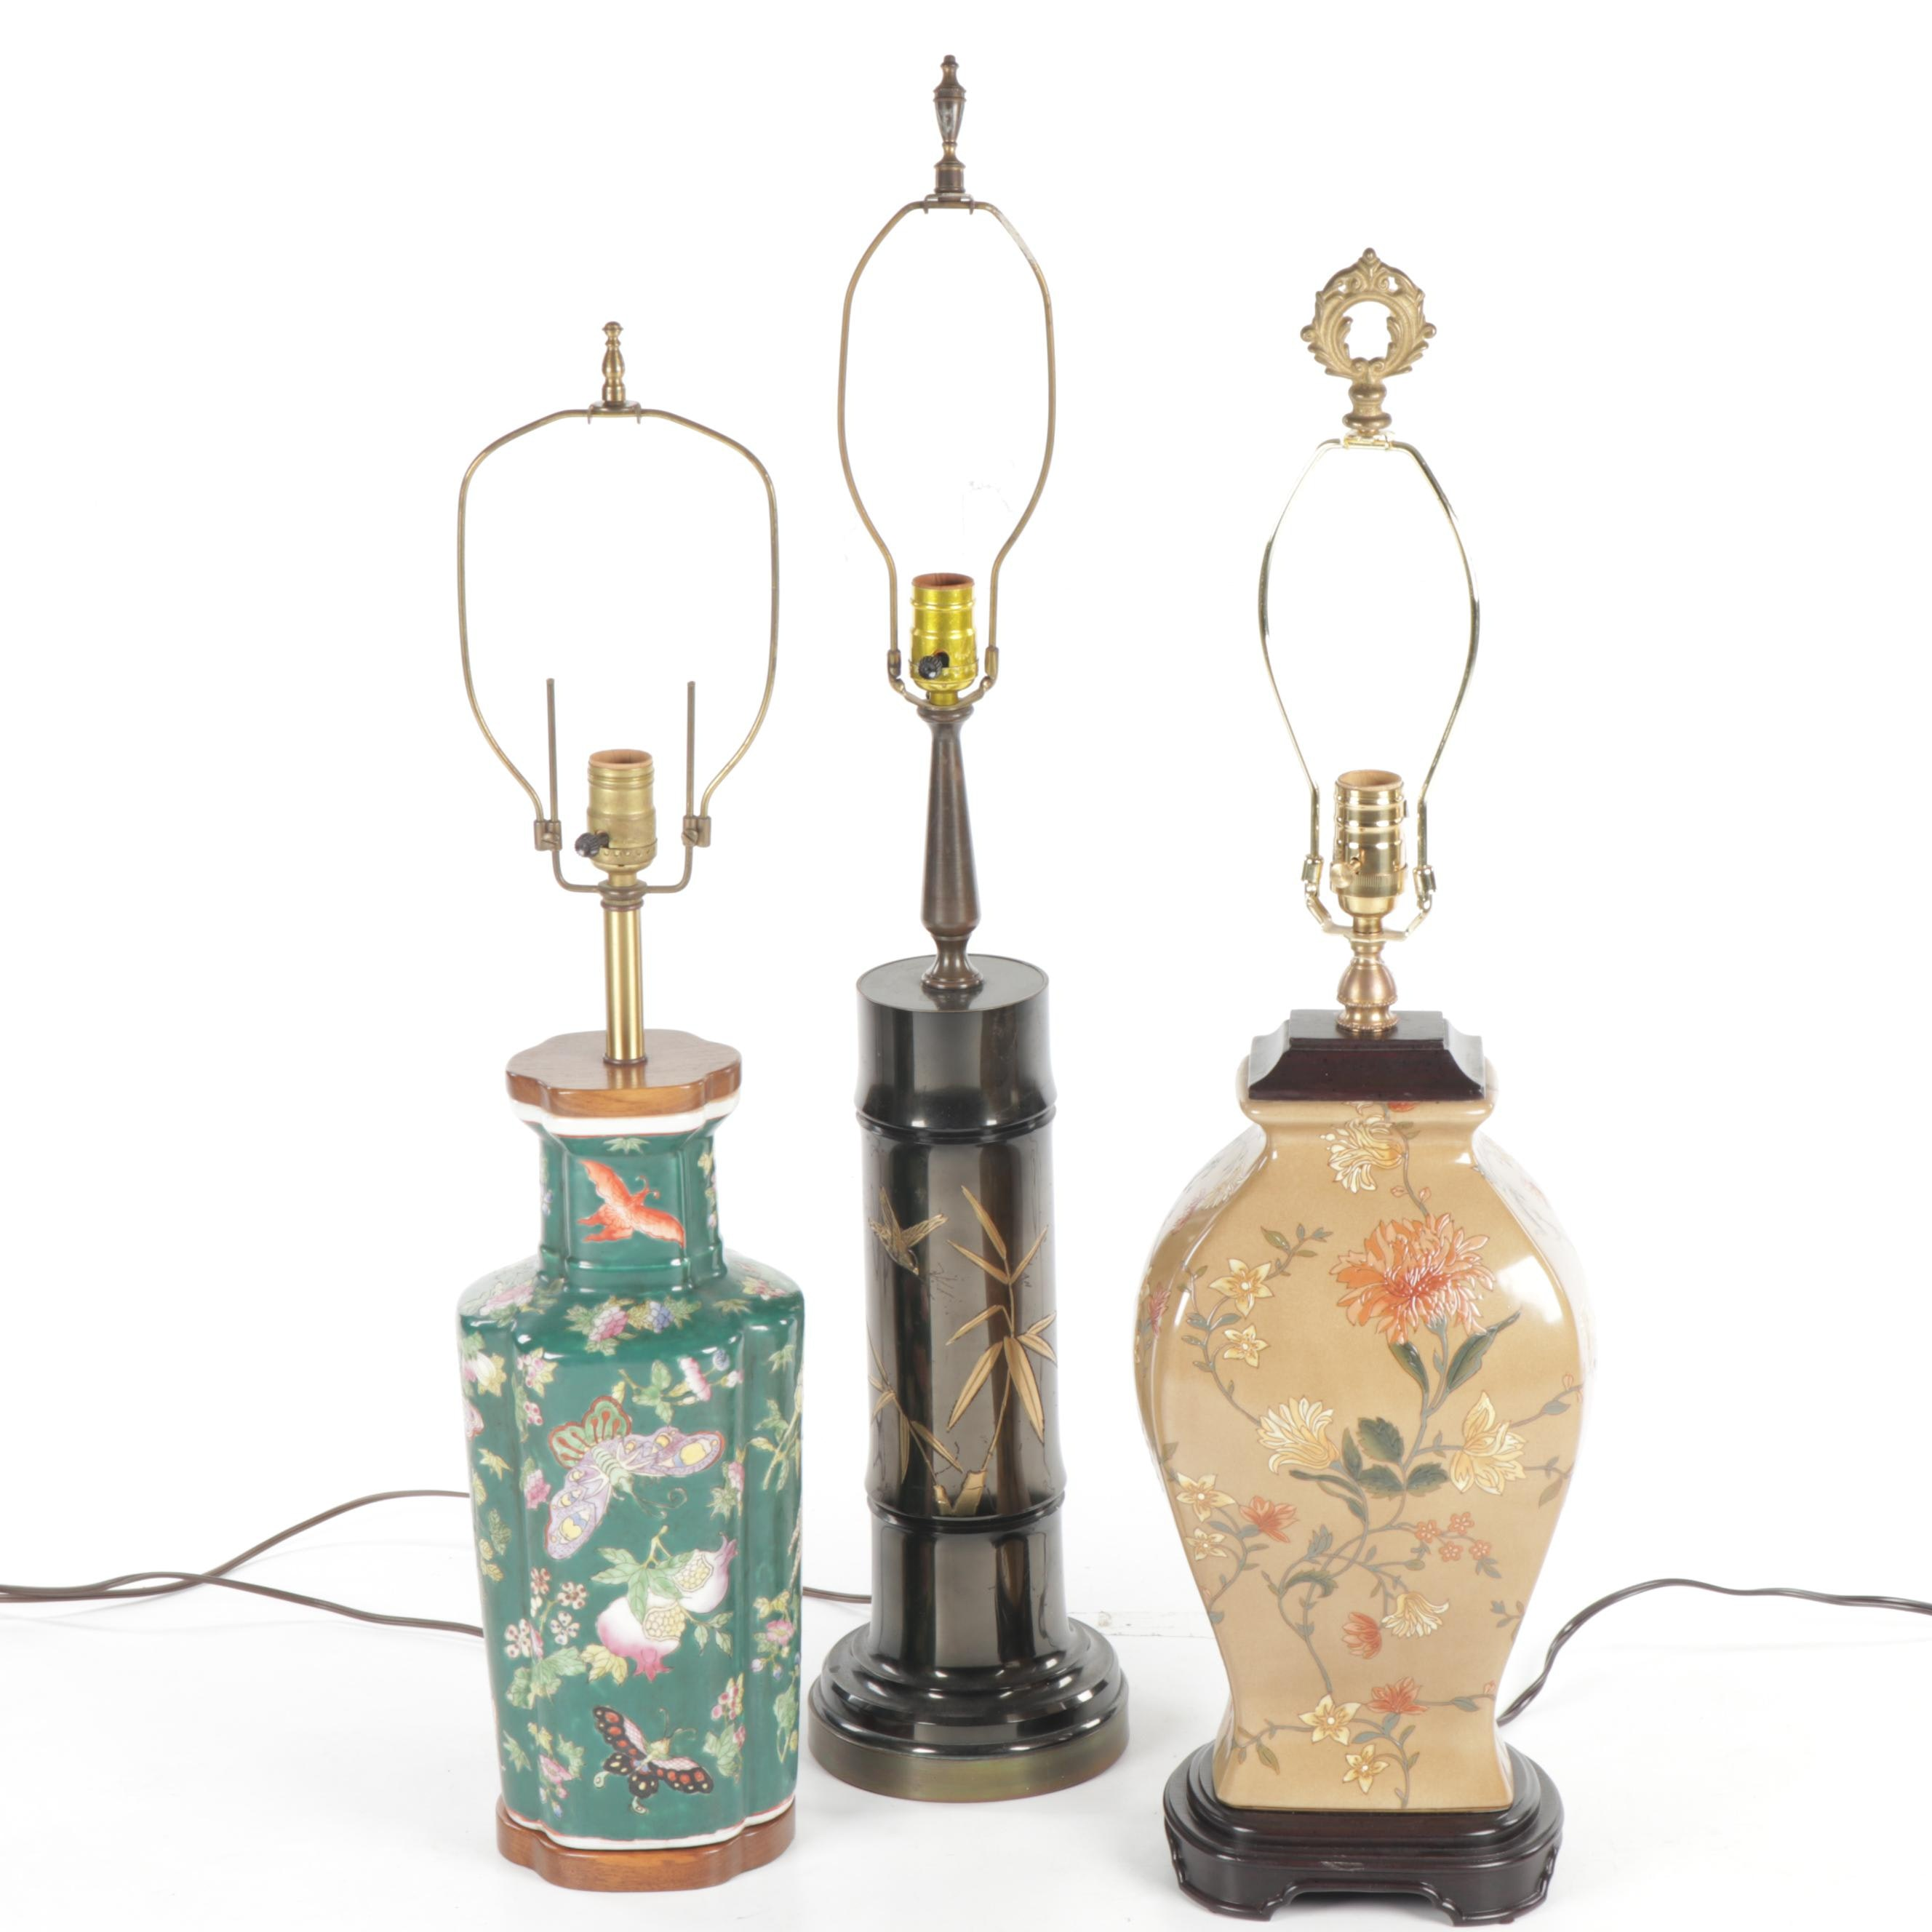 Collection of Asian Inspired Ceramic and Brass Lamps, with Excelsior